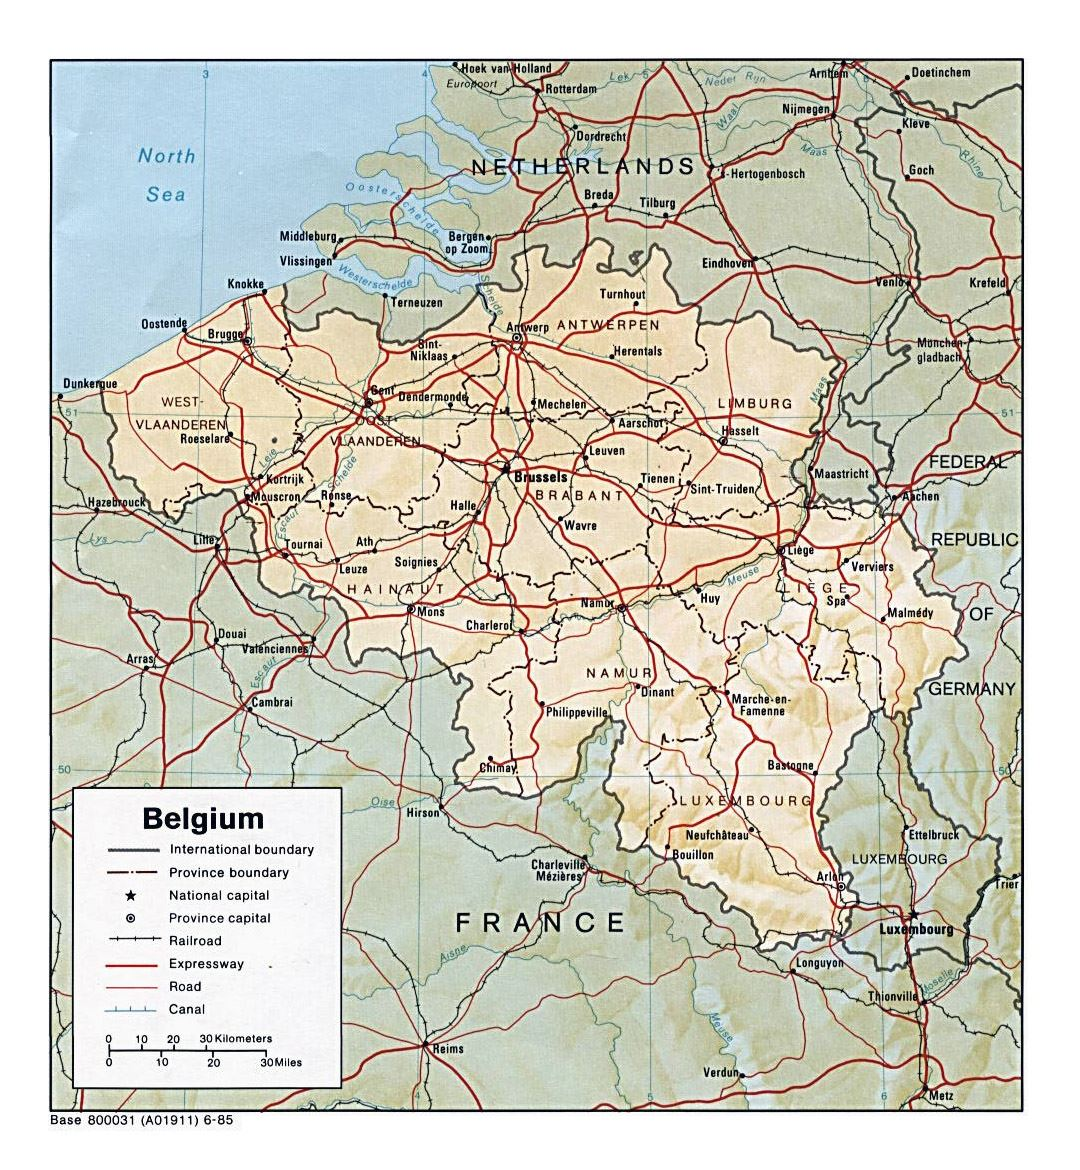 Detailed political and administrative map of Belgium with relief, roads and major cities - 1985